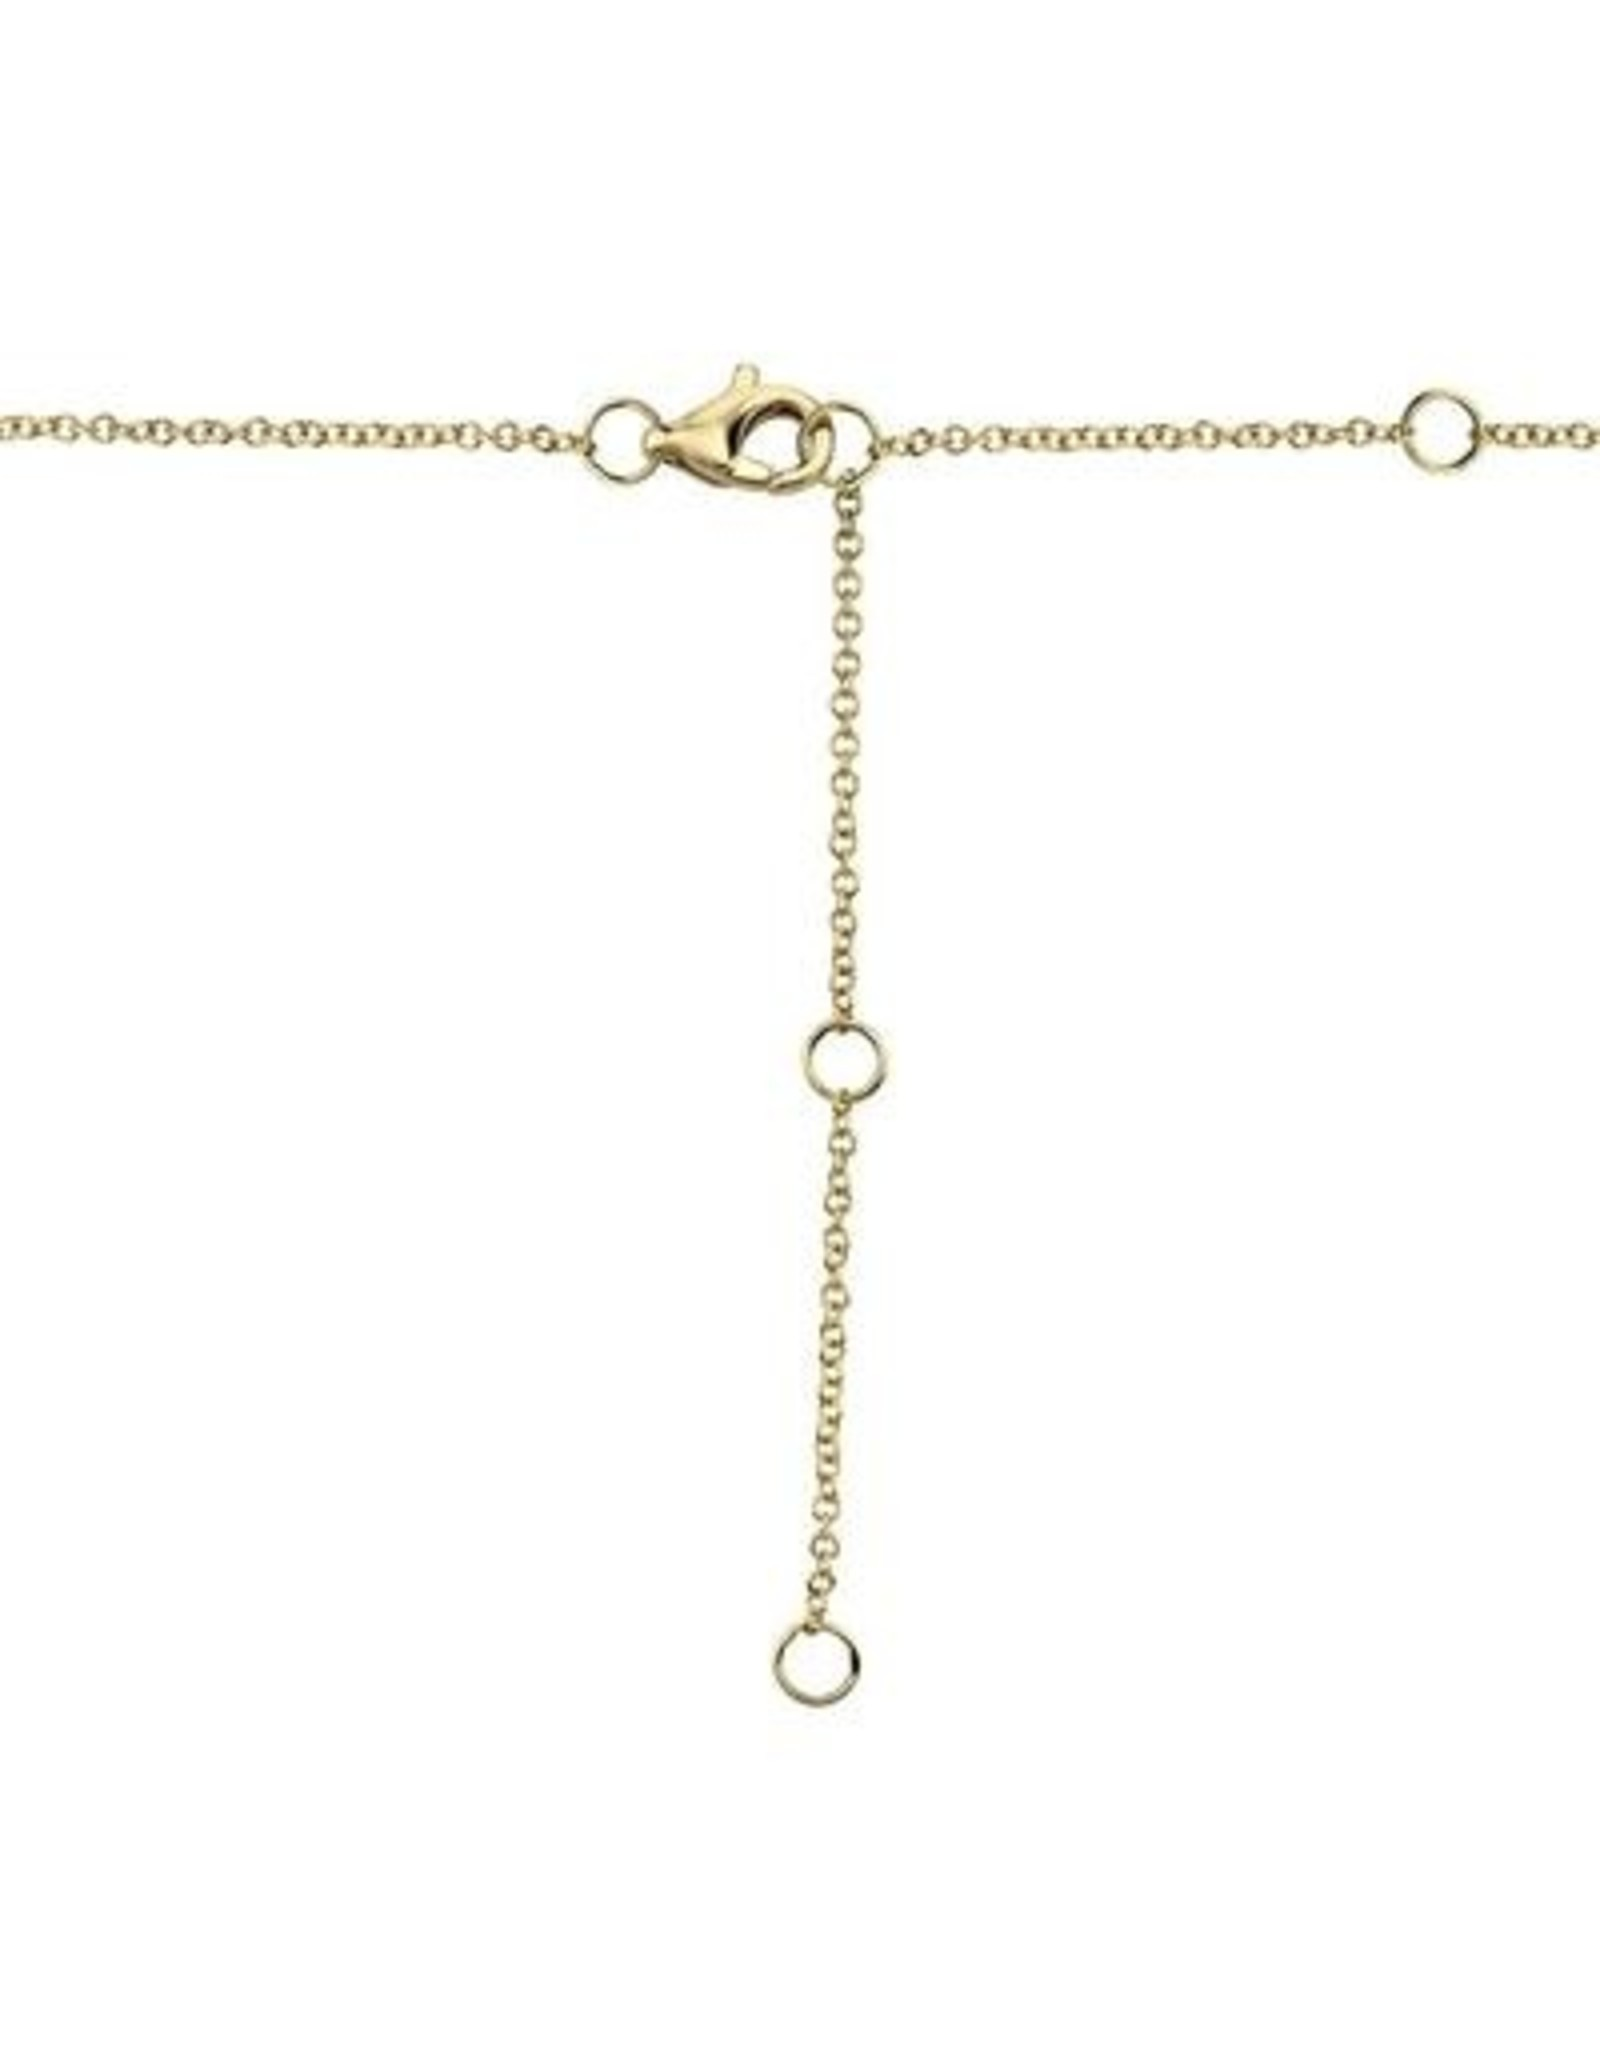 14K Yellow Gold Entwined Circle Diamond Necklace, D: 0.15ct